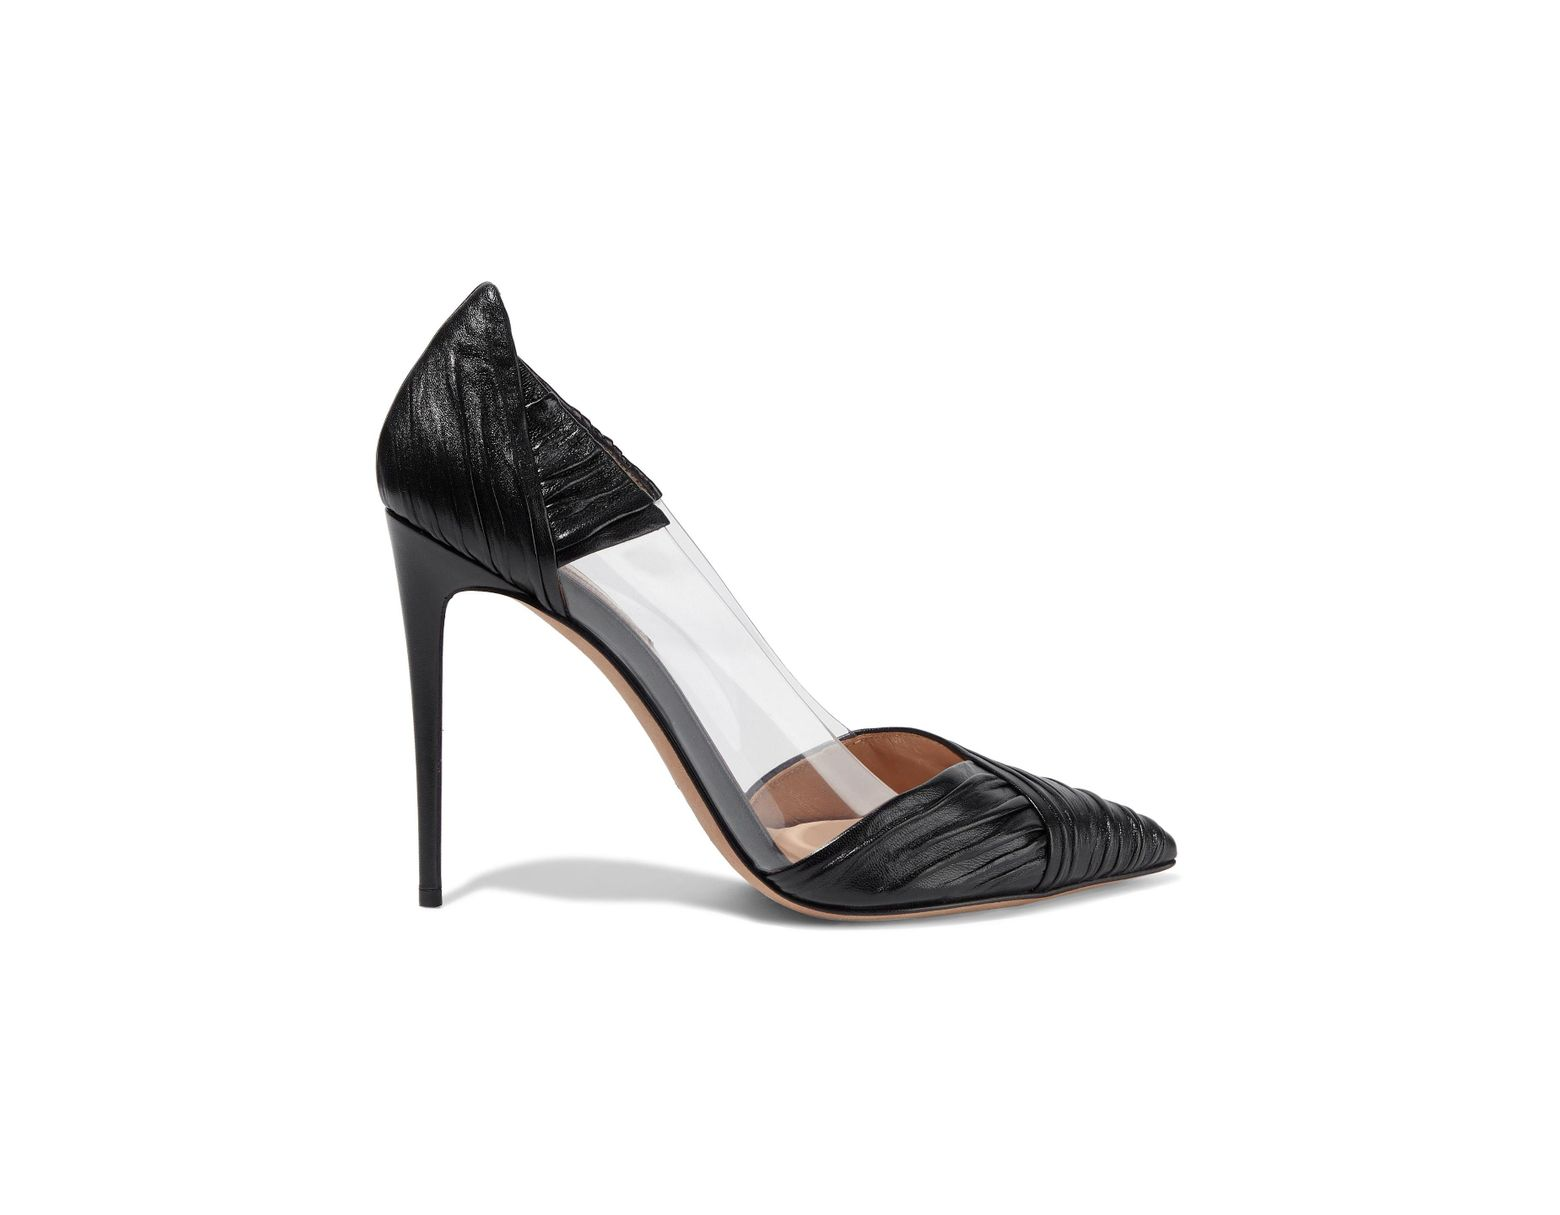 Pumps Leather And Woman Pvc Black Women's Ruched dxoCerB